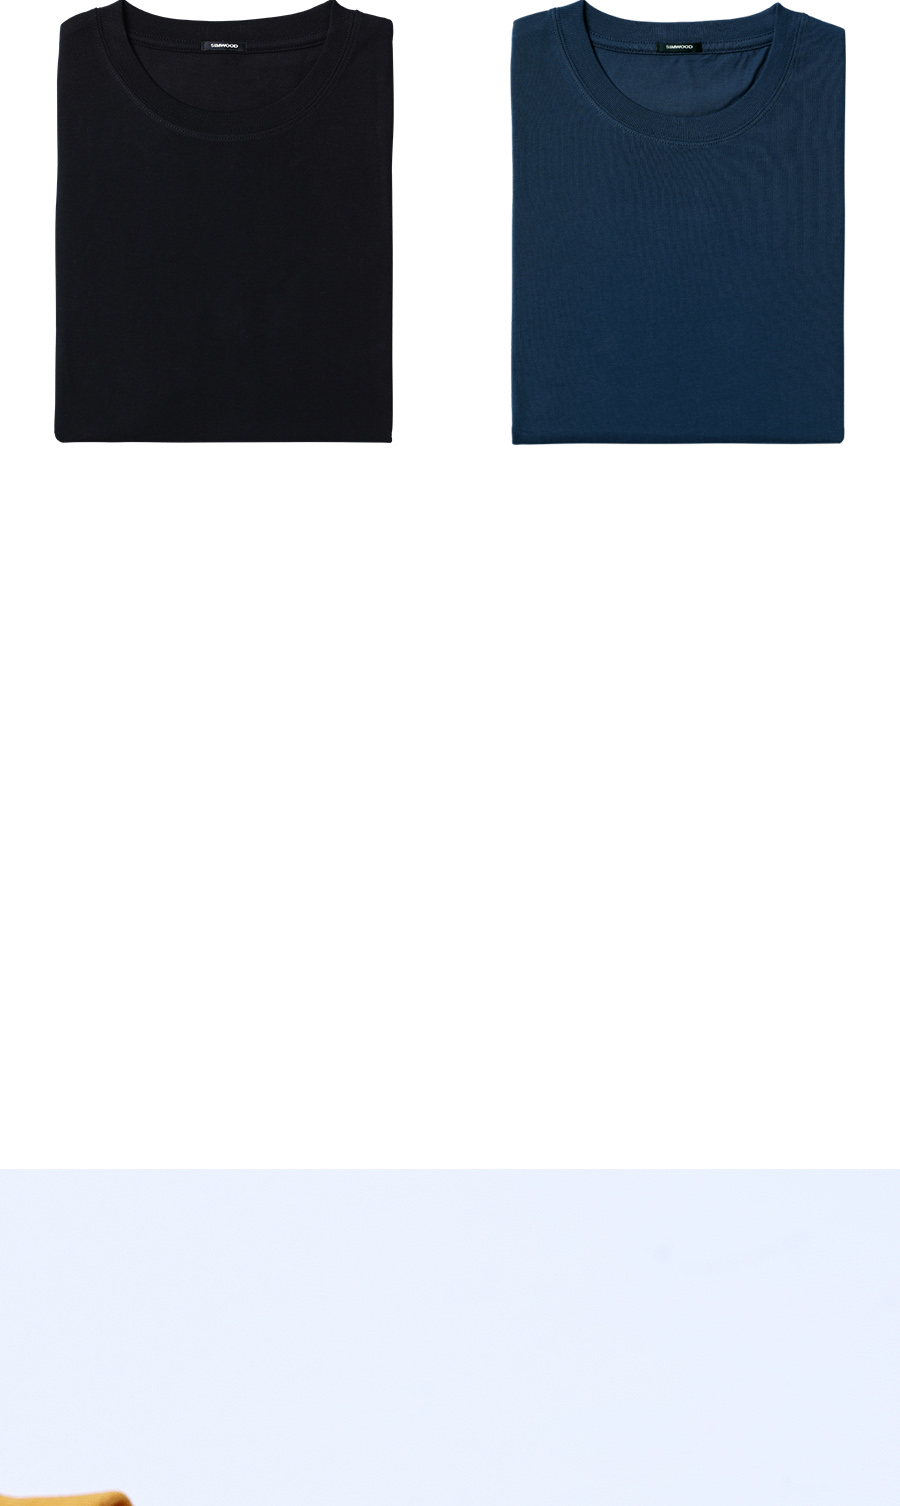 SIMWOOD 19 Summer New T-Shirt Men 100% Cotton Solid Color Casual t shirt Basics O-neck High Quality Plus Size Male Tee 190004 31